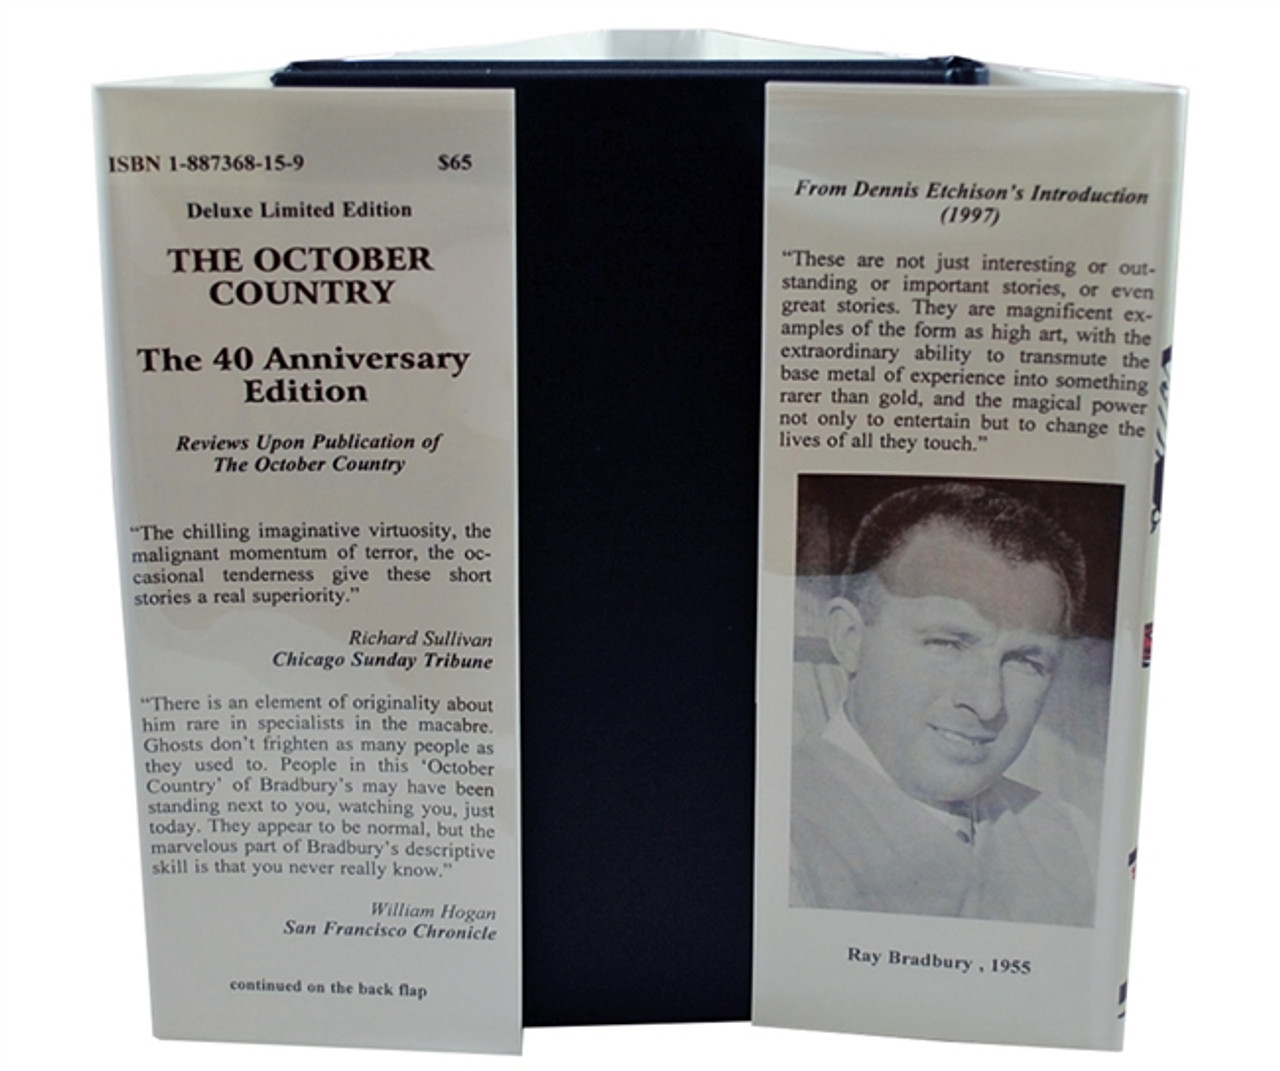 """Ray Bradbury """"The October Country - The 40th Anniversary Edition"""" Signed Limited Edition, 439 of 500 in slipcase [Very Fine]"""